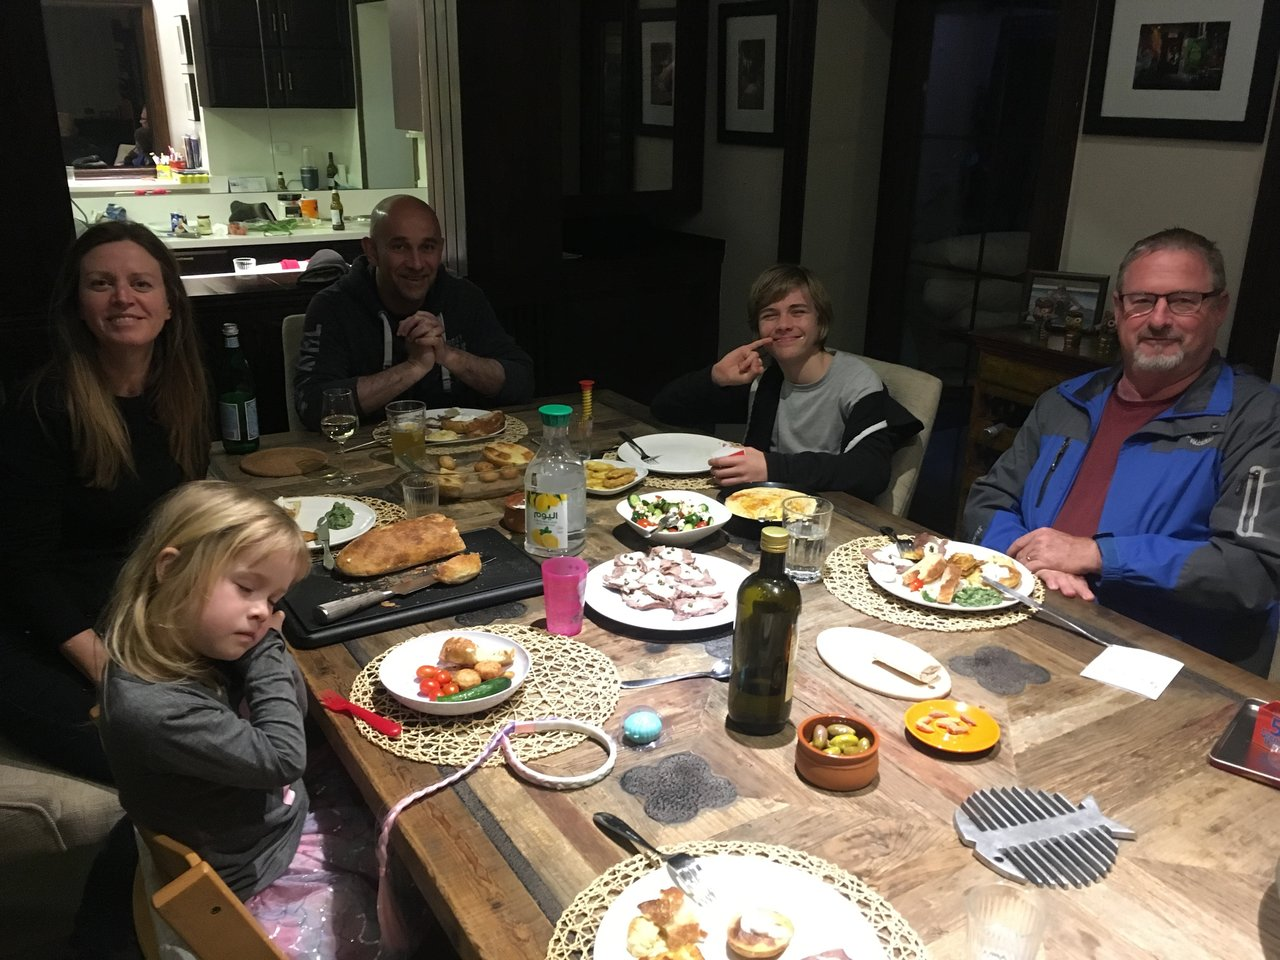 Lovely dinner with Cousin Elizabeth and family | Photo taken by Linley V